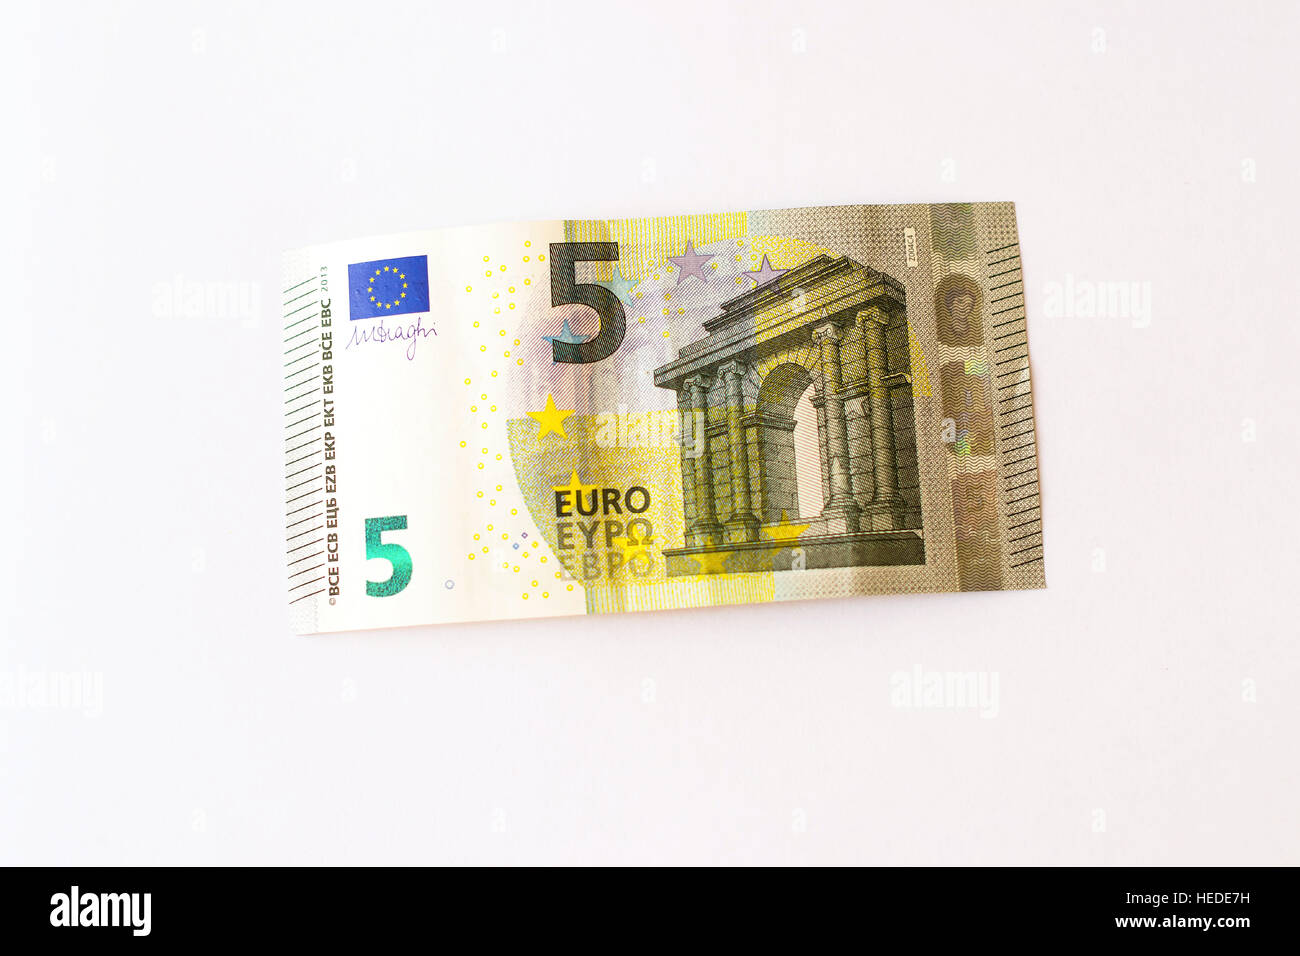 Euro banknotes are in denominations of 5 euros symbol of european euro banknotes are in denominations of 5 euros symbol of european currency to wealth and investment money of european union biocorpaavc Images